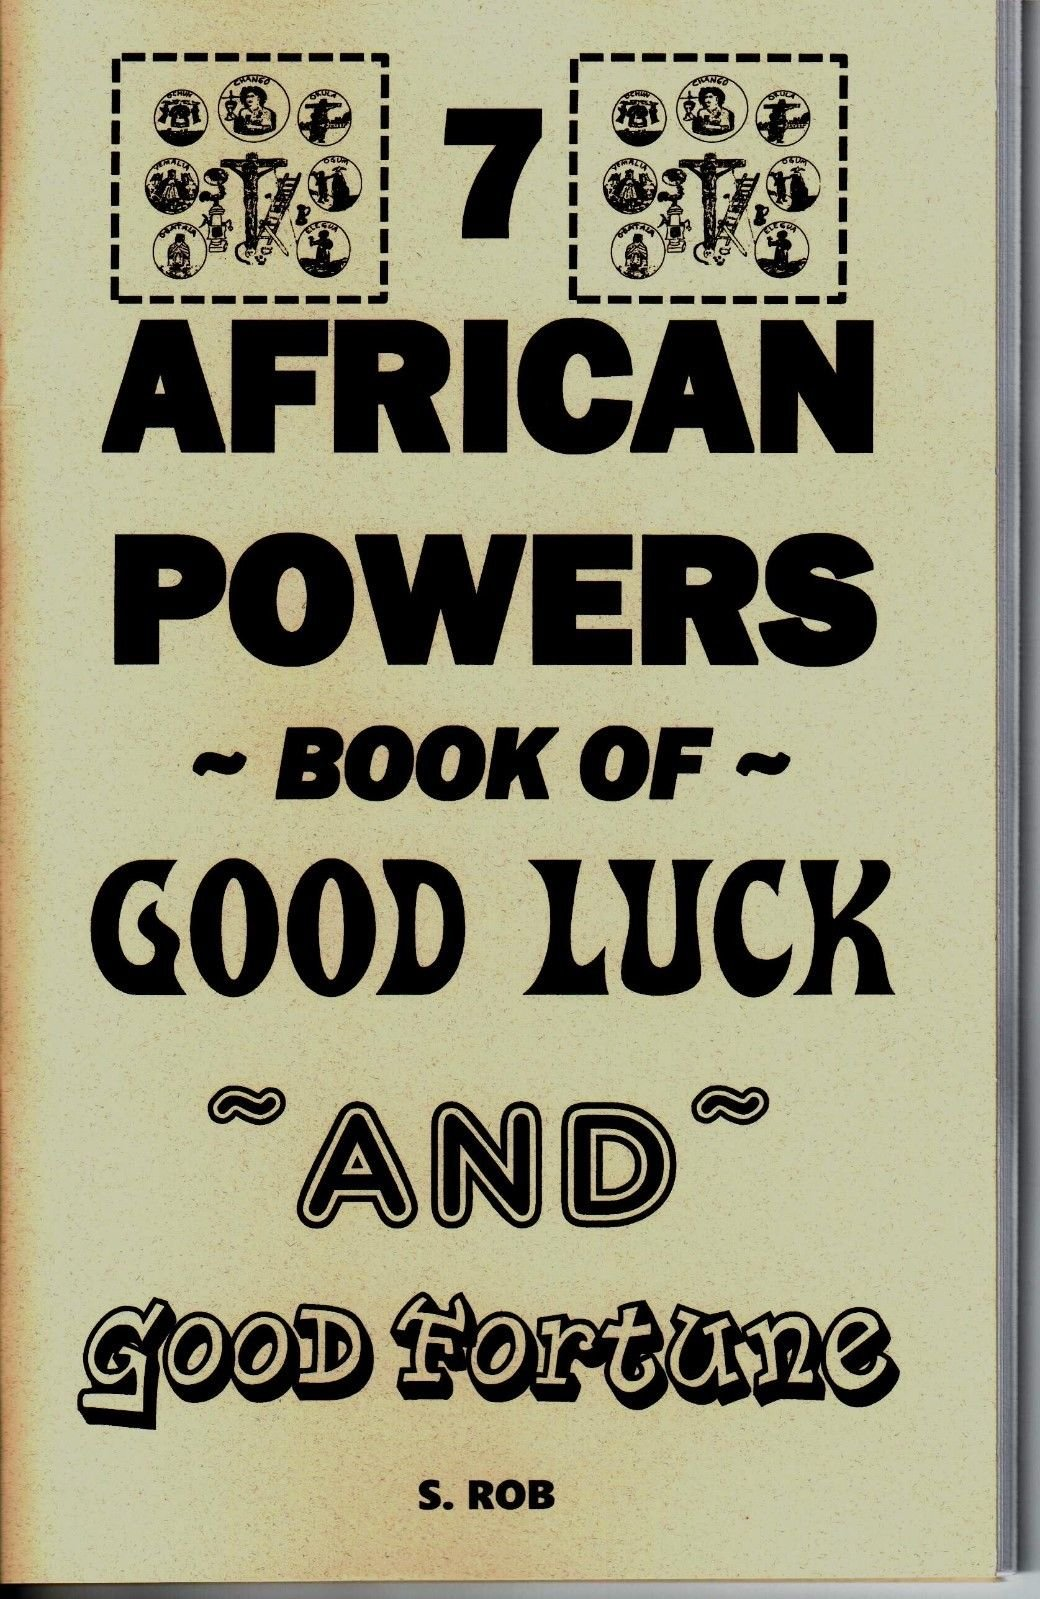 Download THE 7 AFRICAN POWERS BOOK OF GOOD LUCK & GOOD FORTUNE pdf